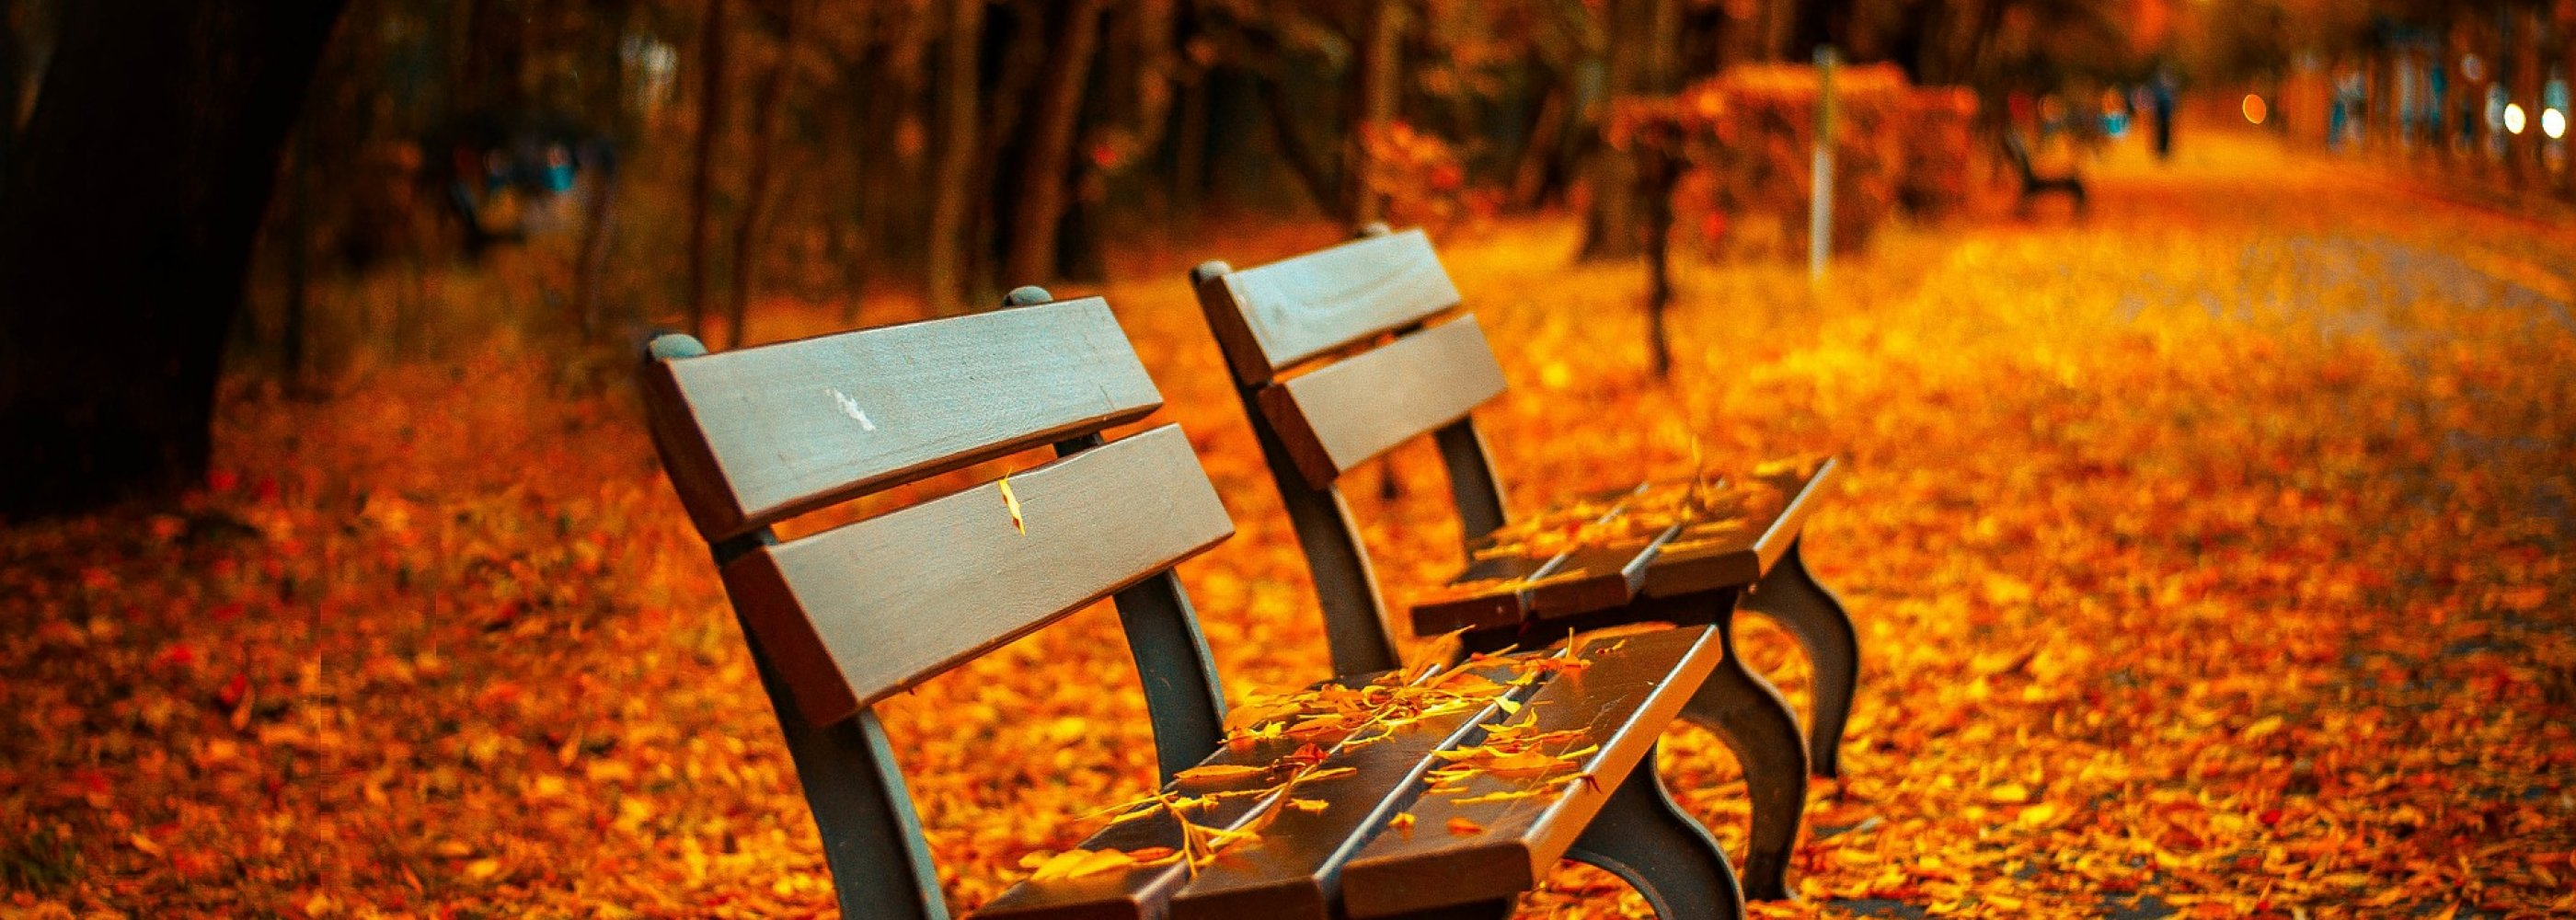 Benches surrounded by leaves